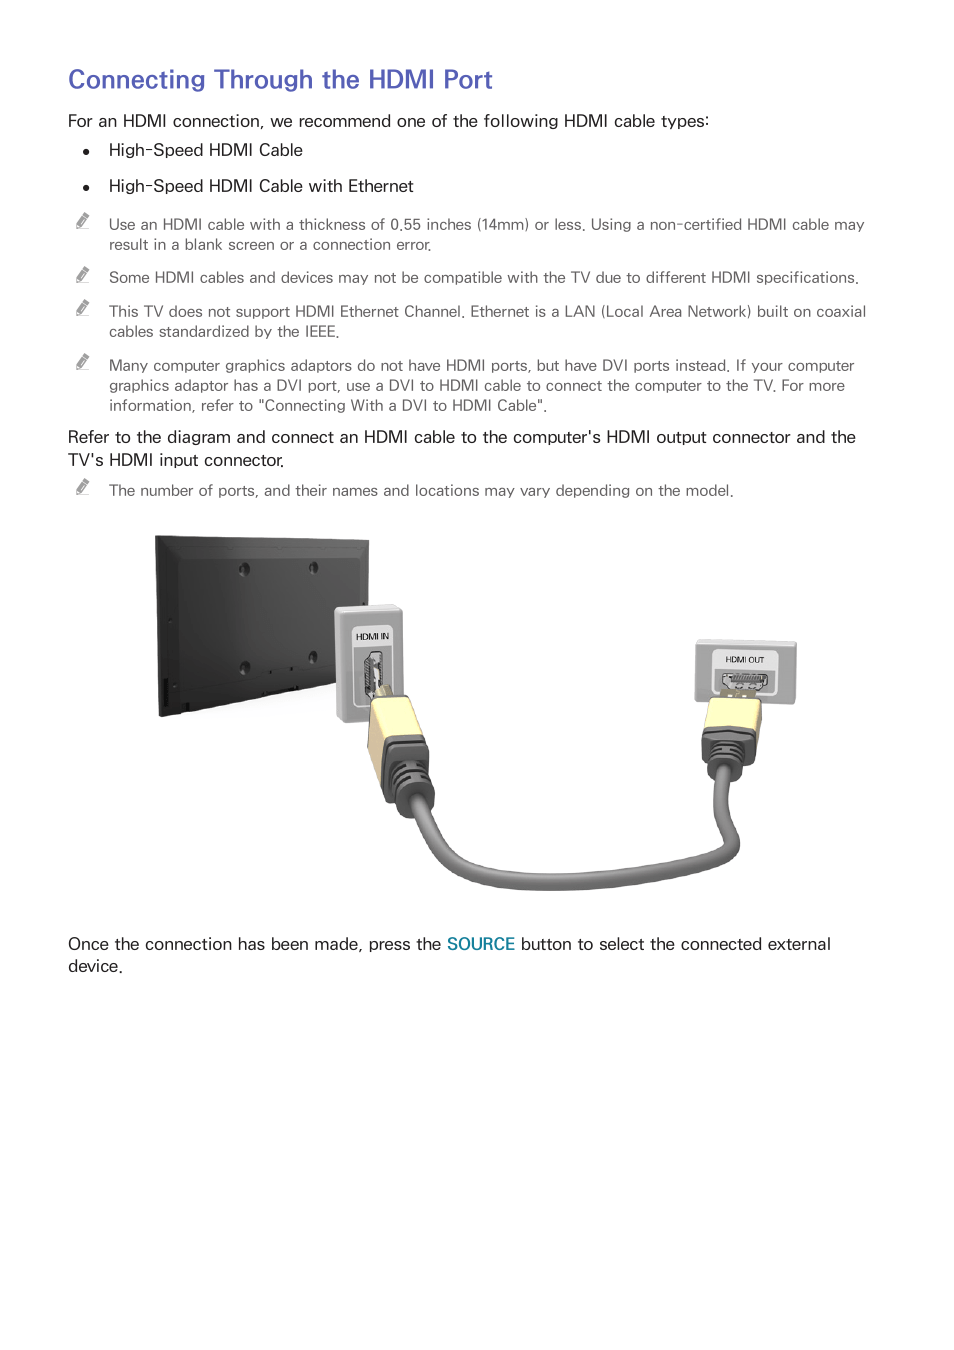 medium resolution of connecting through the hdmi port samsung un24h4500afxza user manual page 12 146